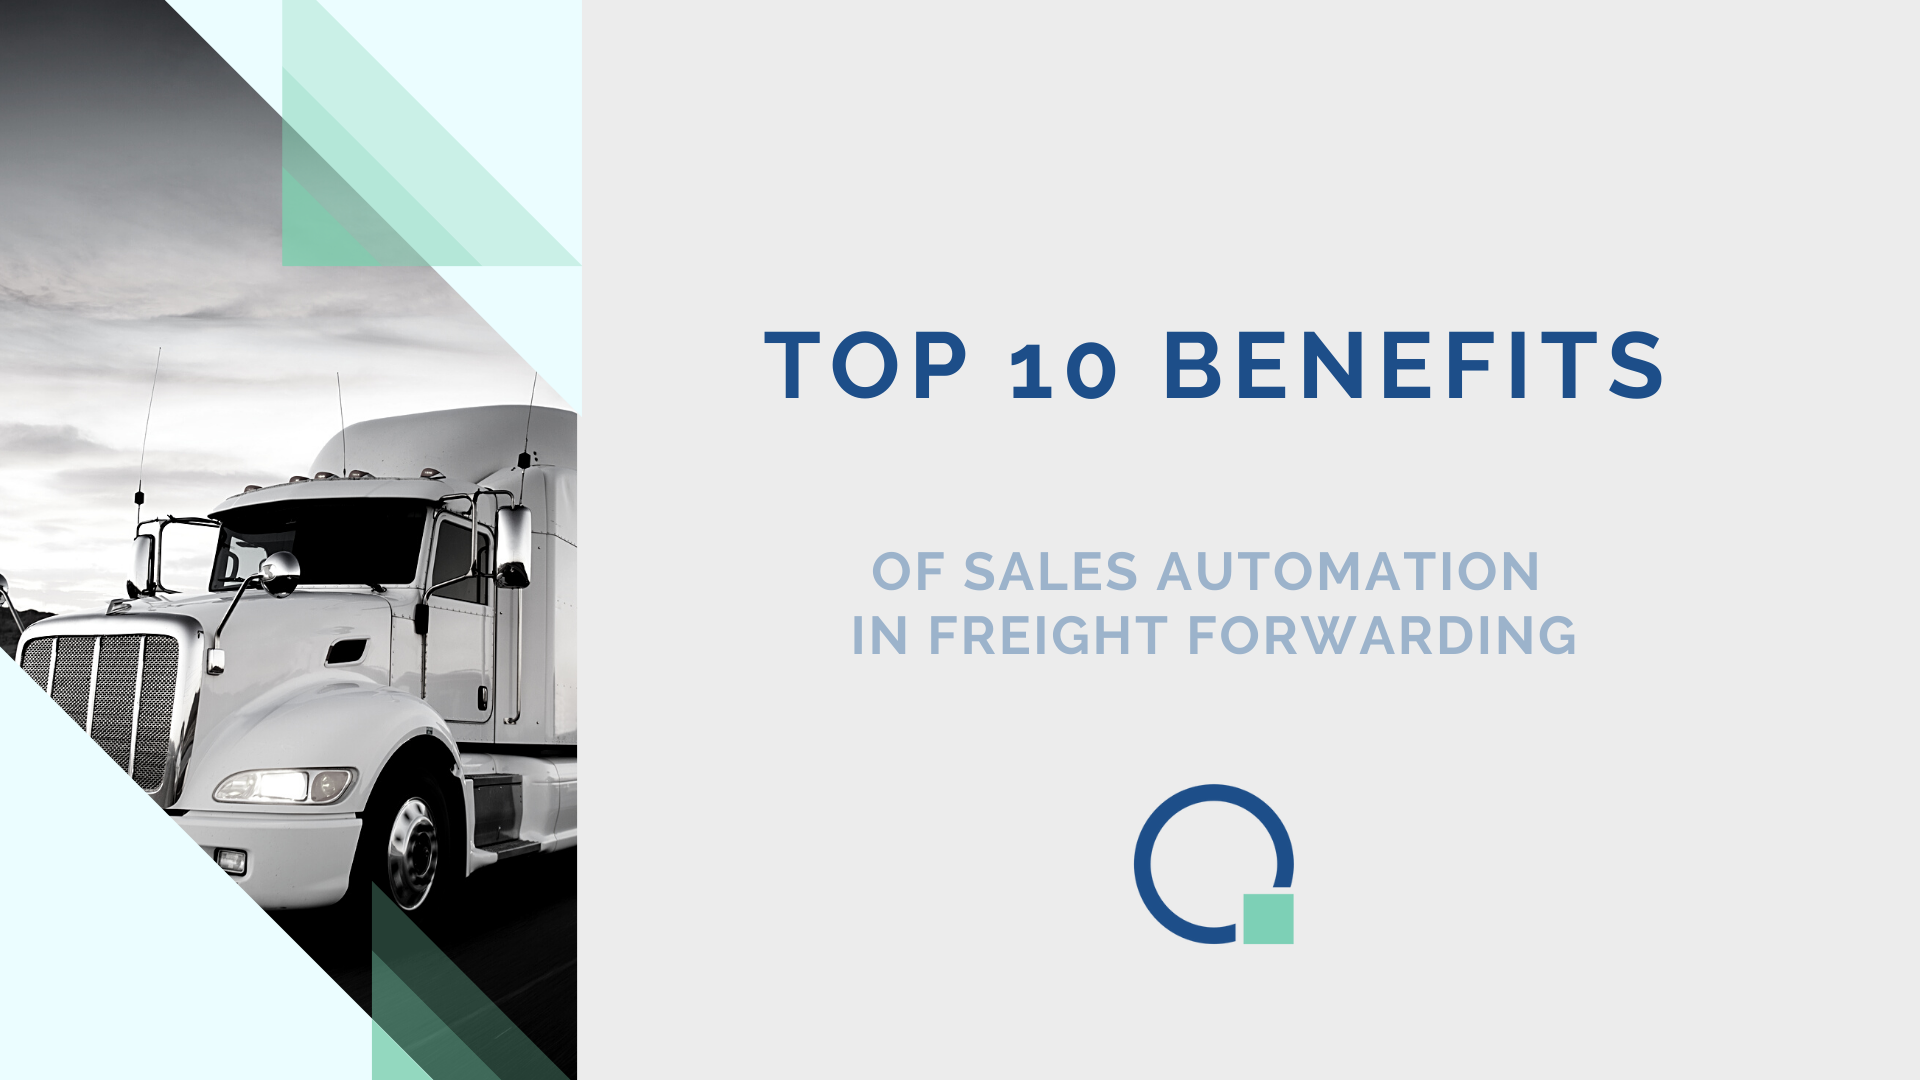 Sales Automation in Freight Forwarding, Quotiss Benefits